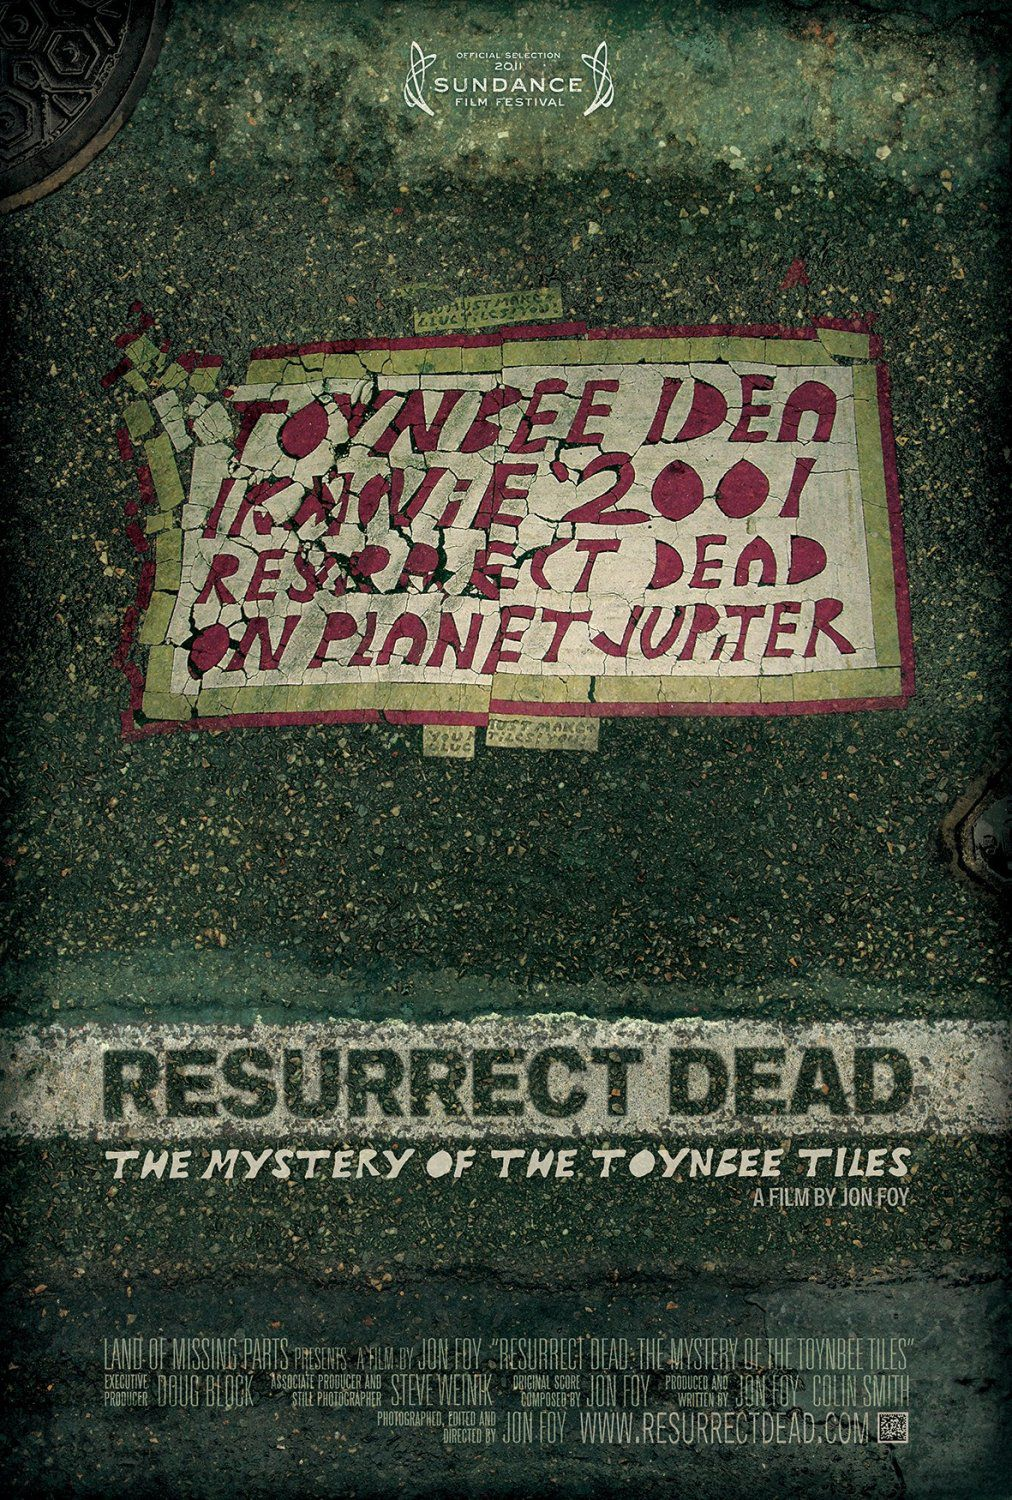 Resurrect Dead the Mystery of the Toynbee Tiles - film poster